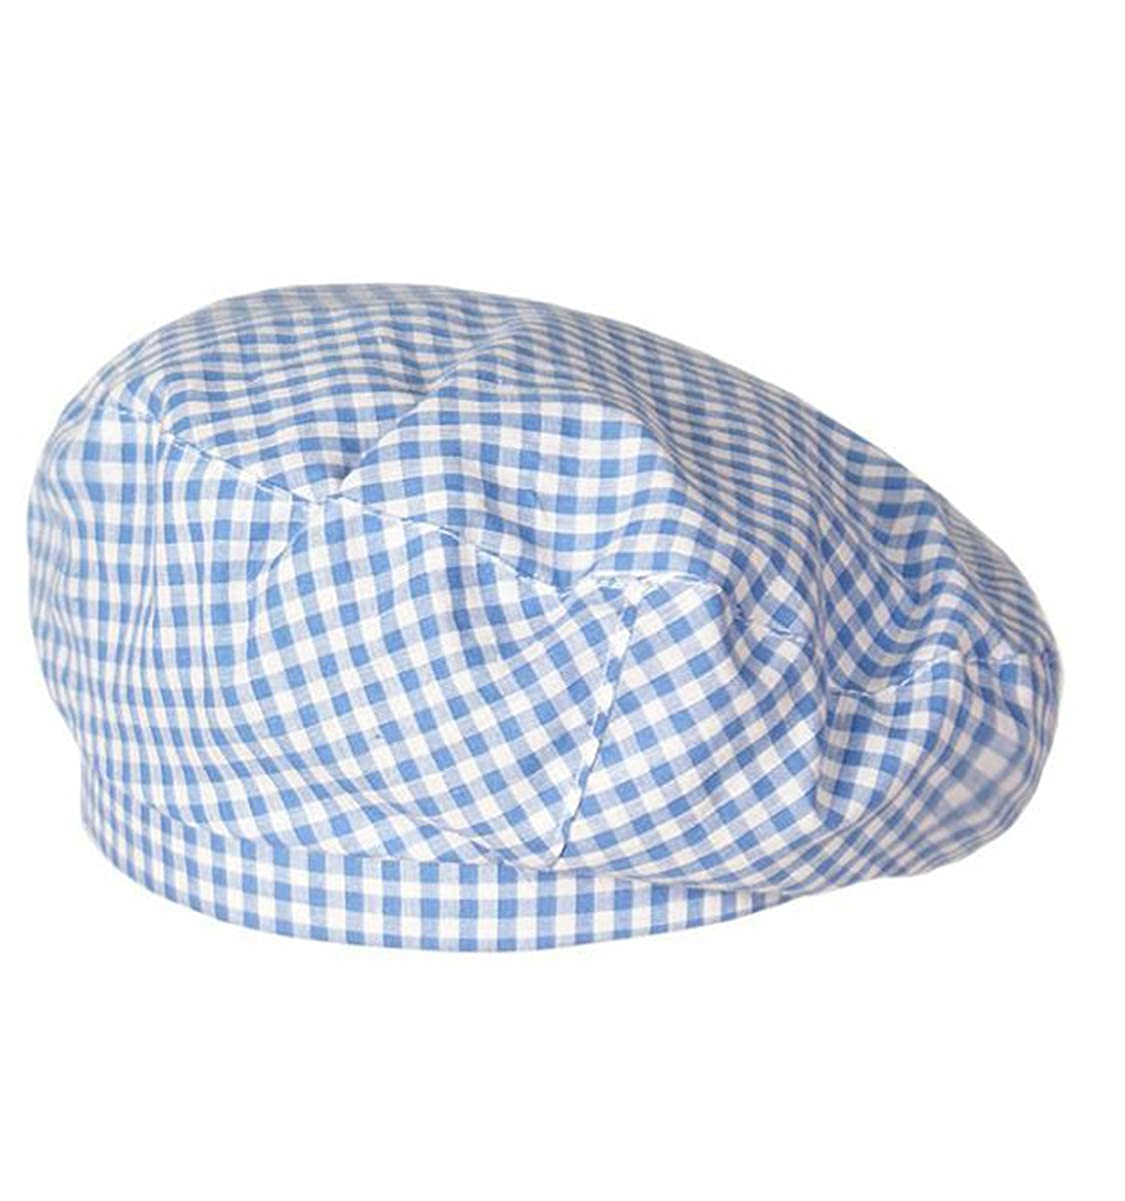 Cotton Blend Beret Checked Print Flat Top Berets Fashion French Style Painters Hat Cap